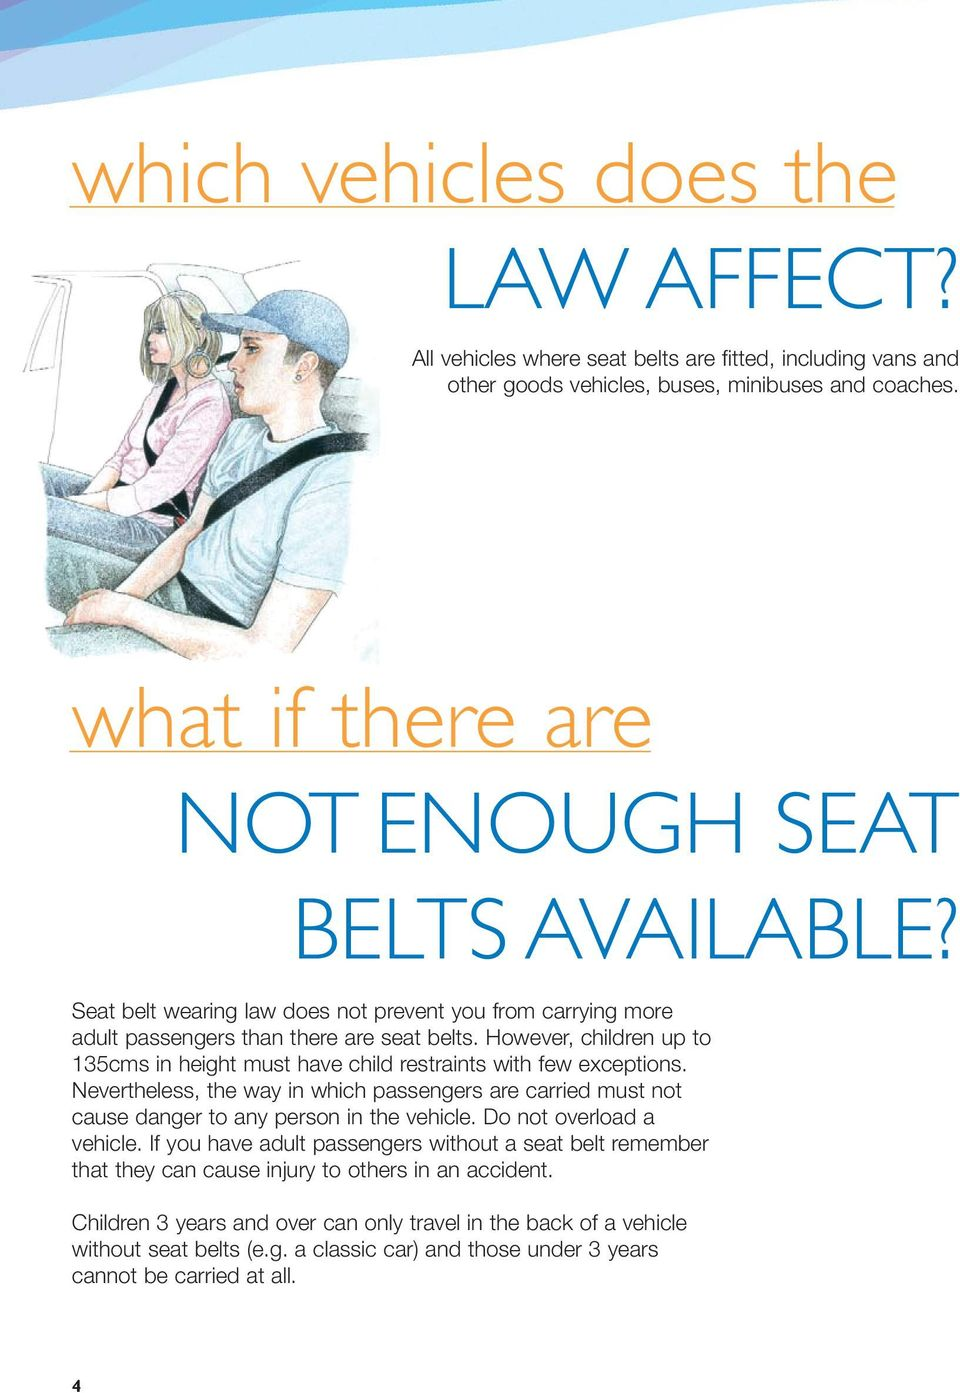 can adults have seat belt syndrome